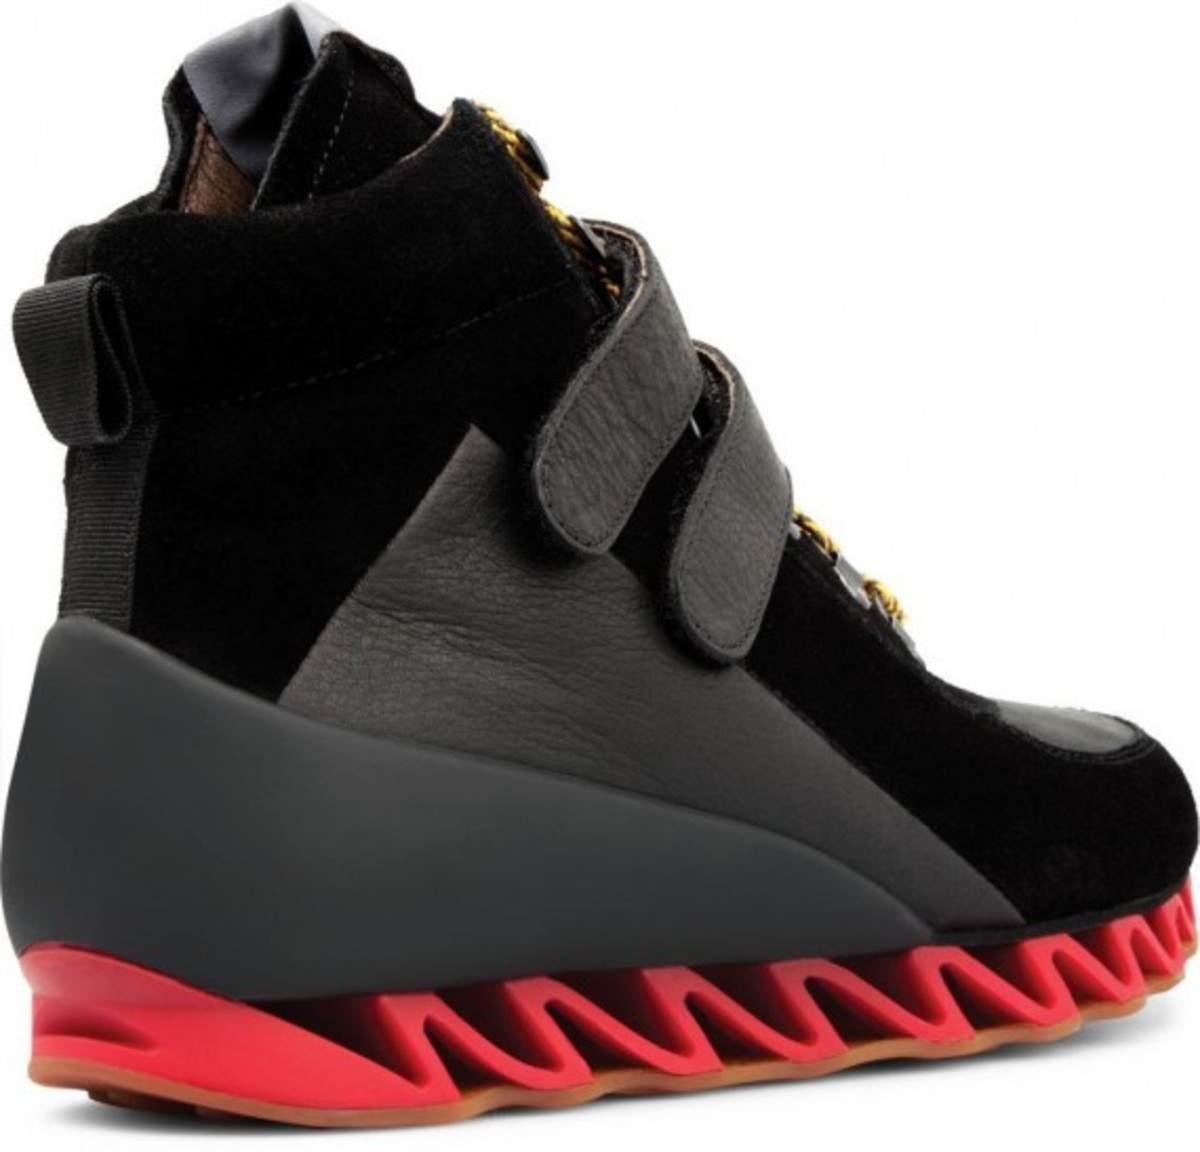 bernhard-willhelm-x-camper-together-fallwinter-2012-sneakers-collection-3